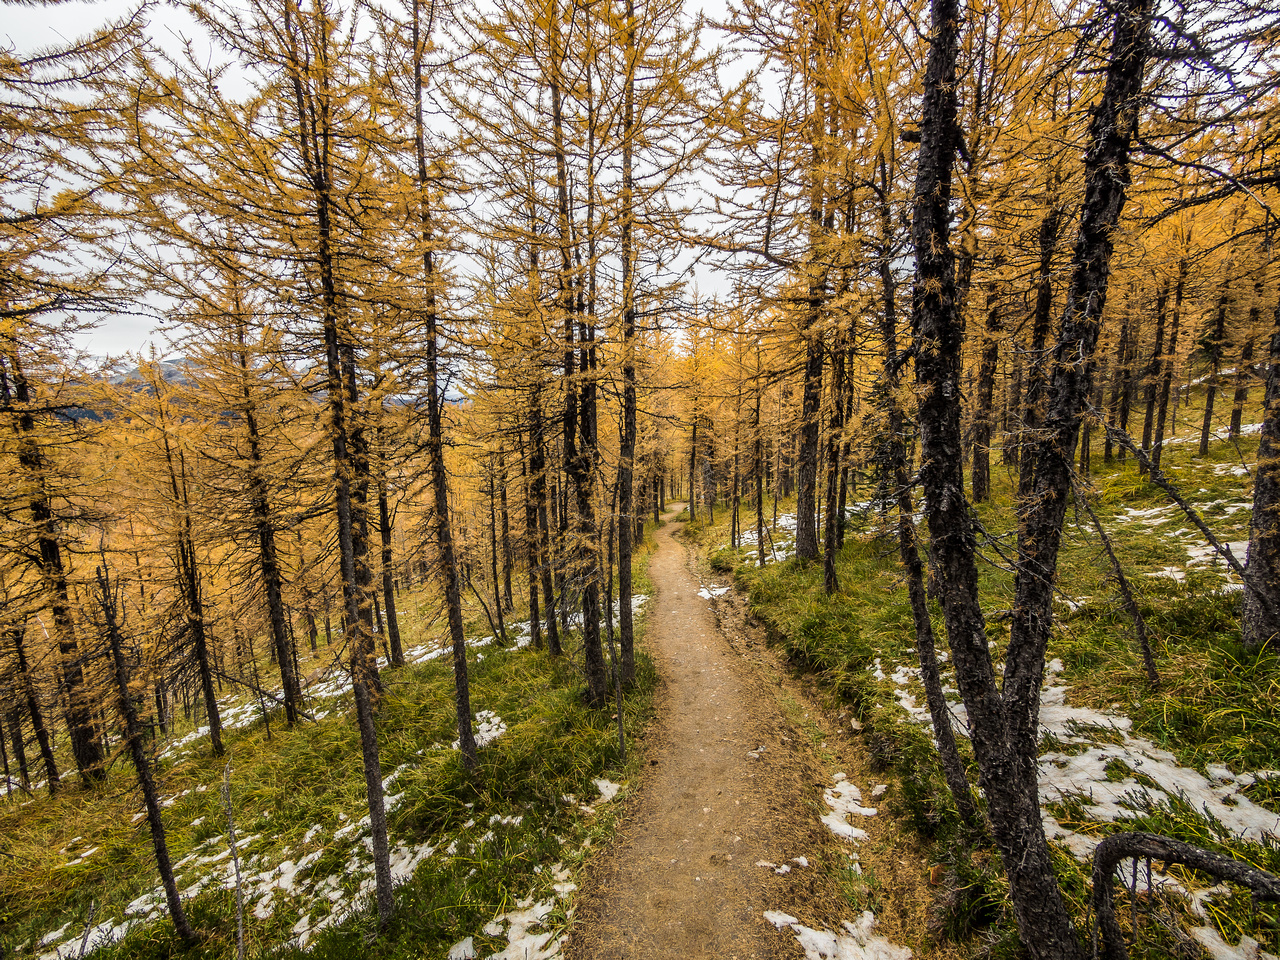 Larch forest on descent.